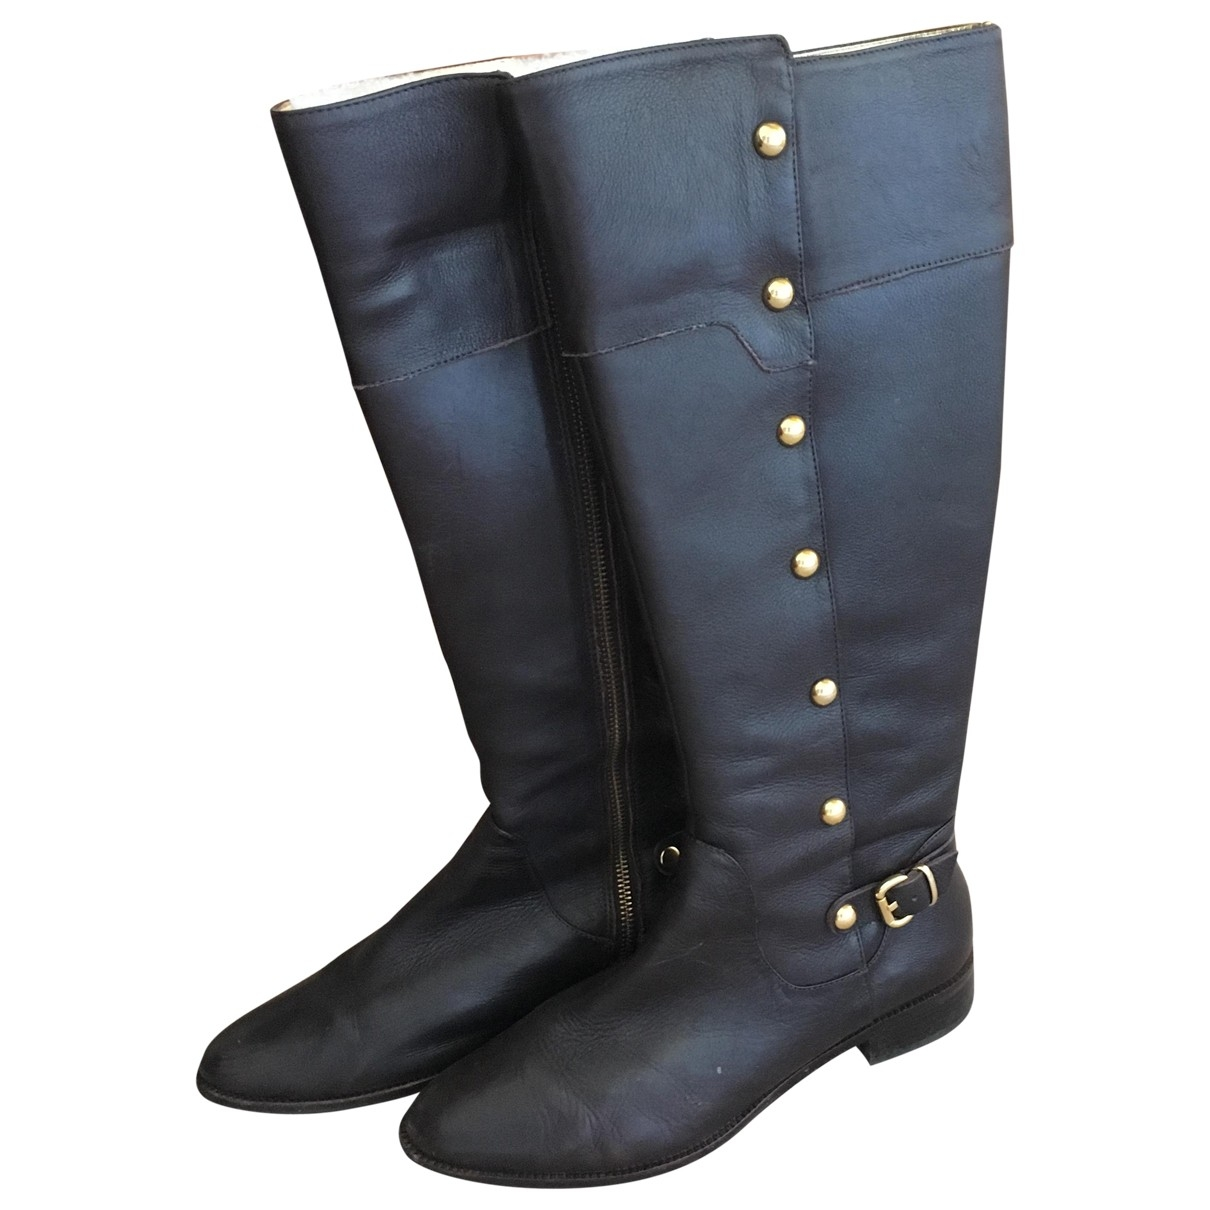 Michael Kors \N Brown Leather Boots for Women 8 US